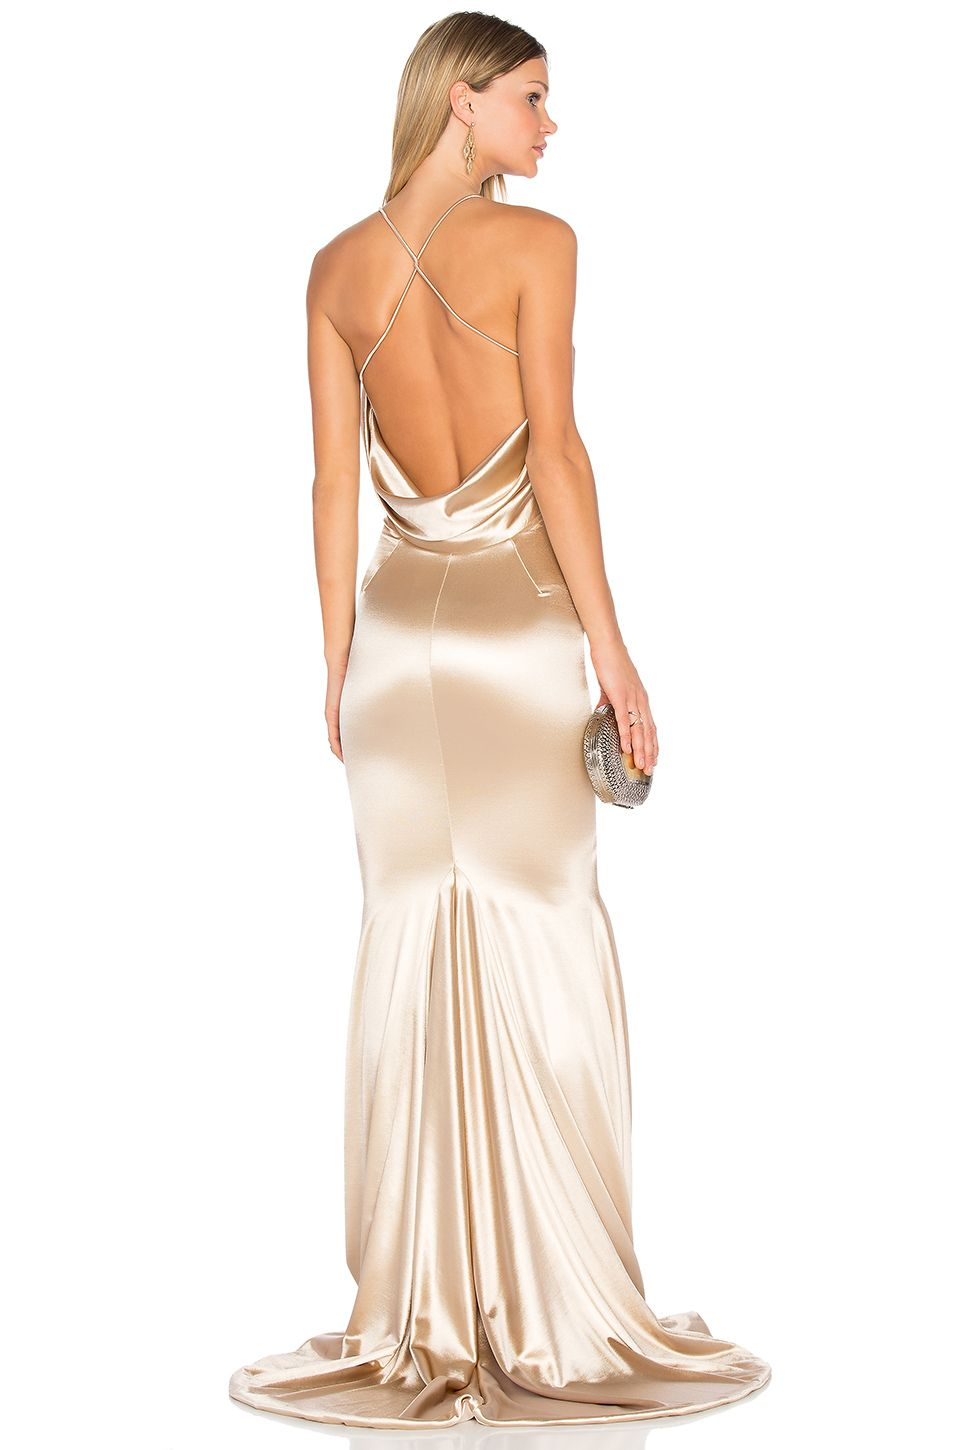 Gemeli Power Barthelemy Gown in Light Champagne Gold | THE dress ...